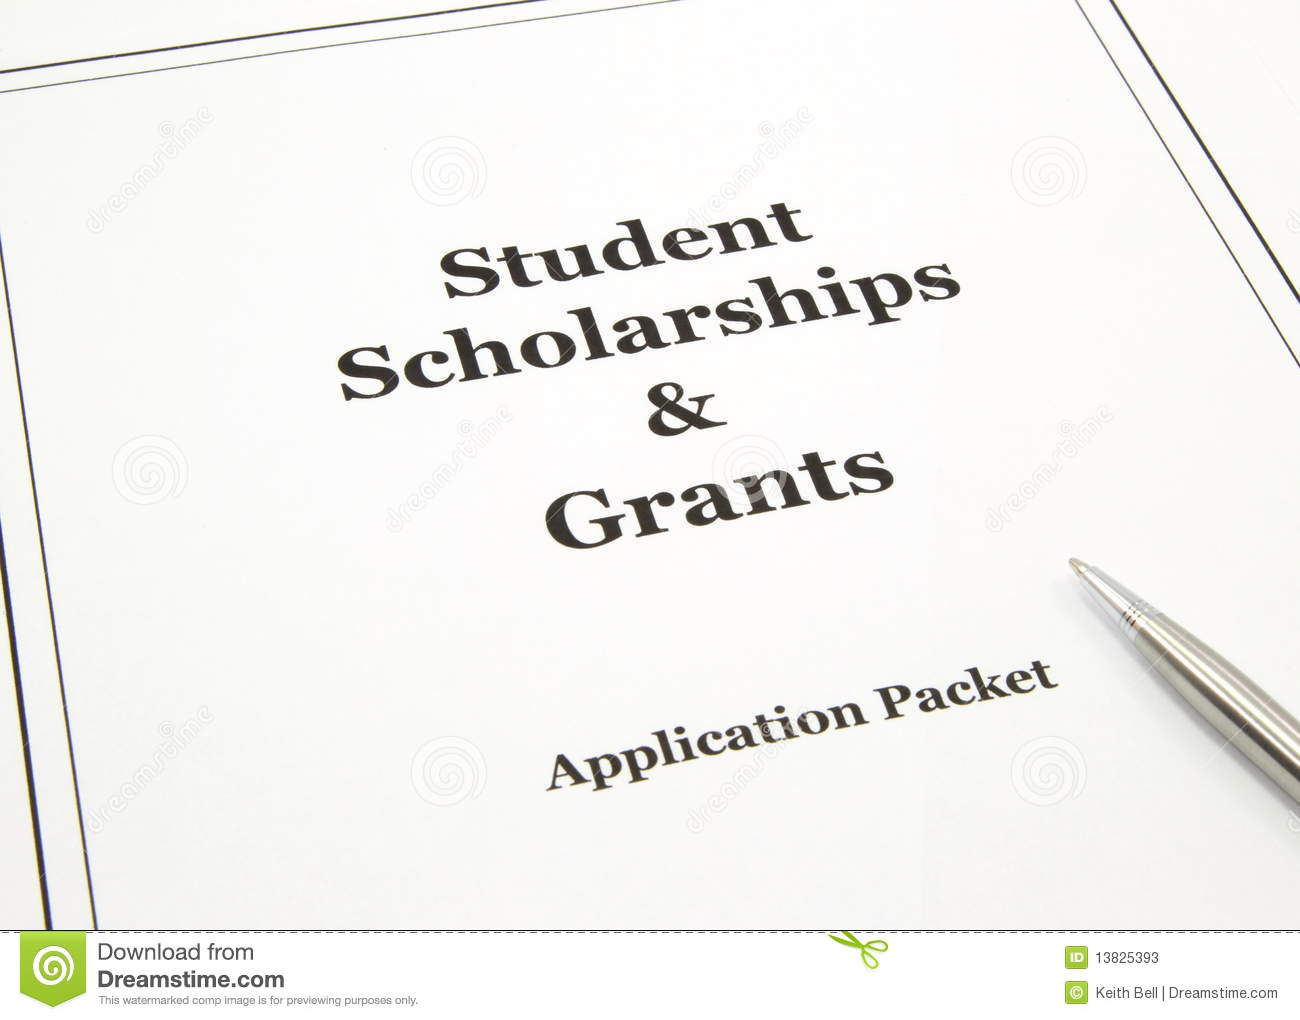 Scholarship And Grants Application Packet Stock Image